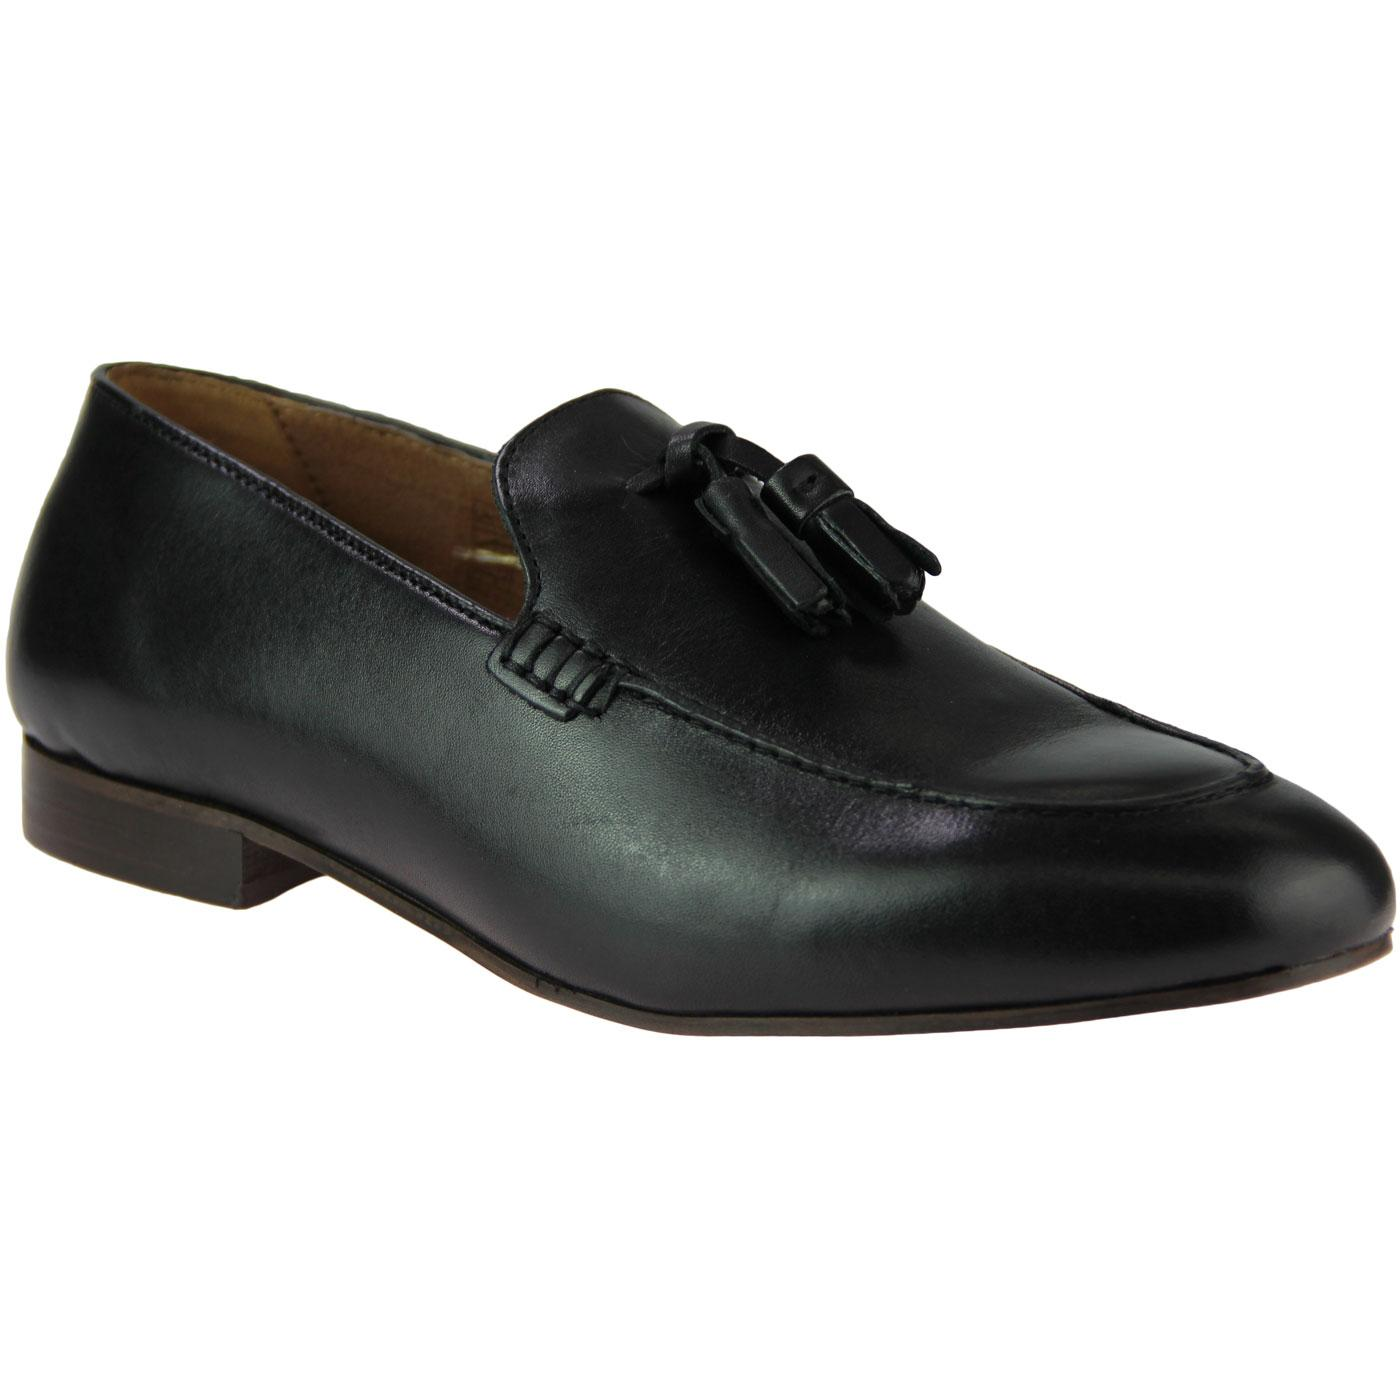 Bolton HUDSON 60s Mod Leather Tassel Loafers BLACK